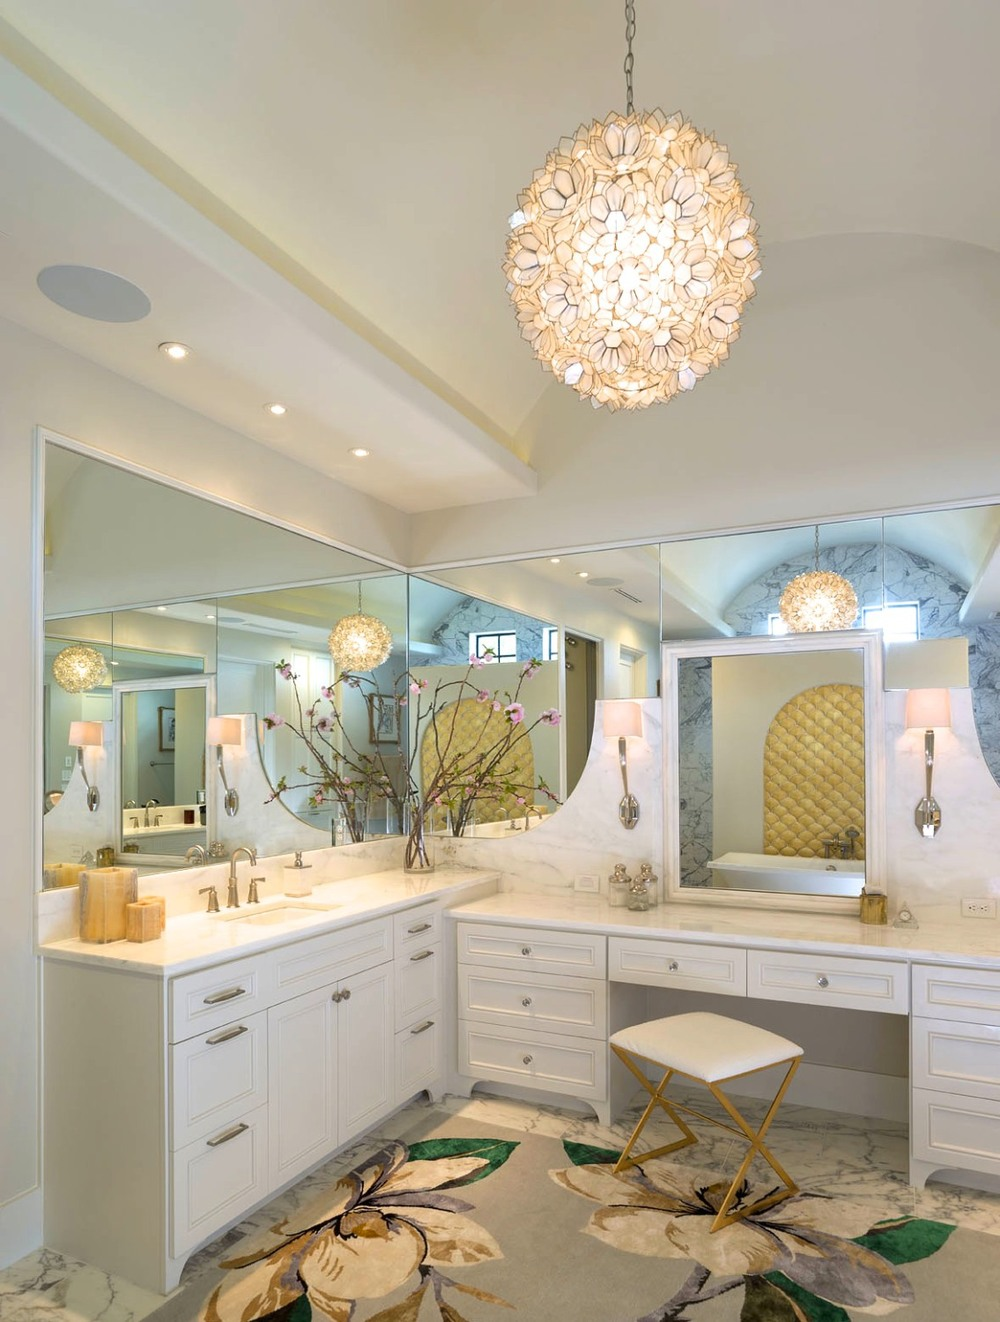 Architecture Home Contemporary elegance bathroom